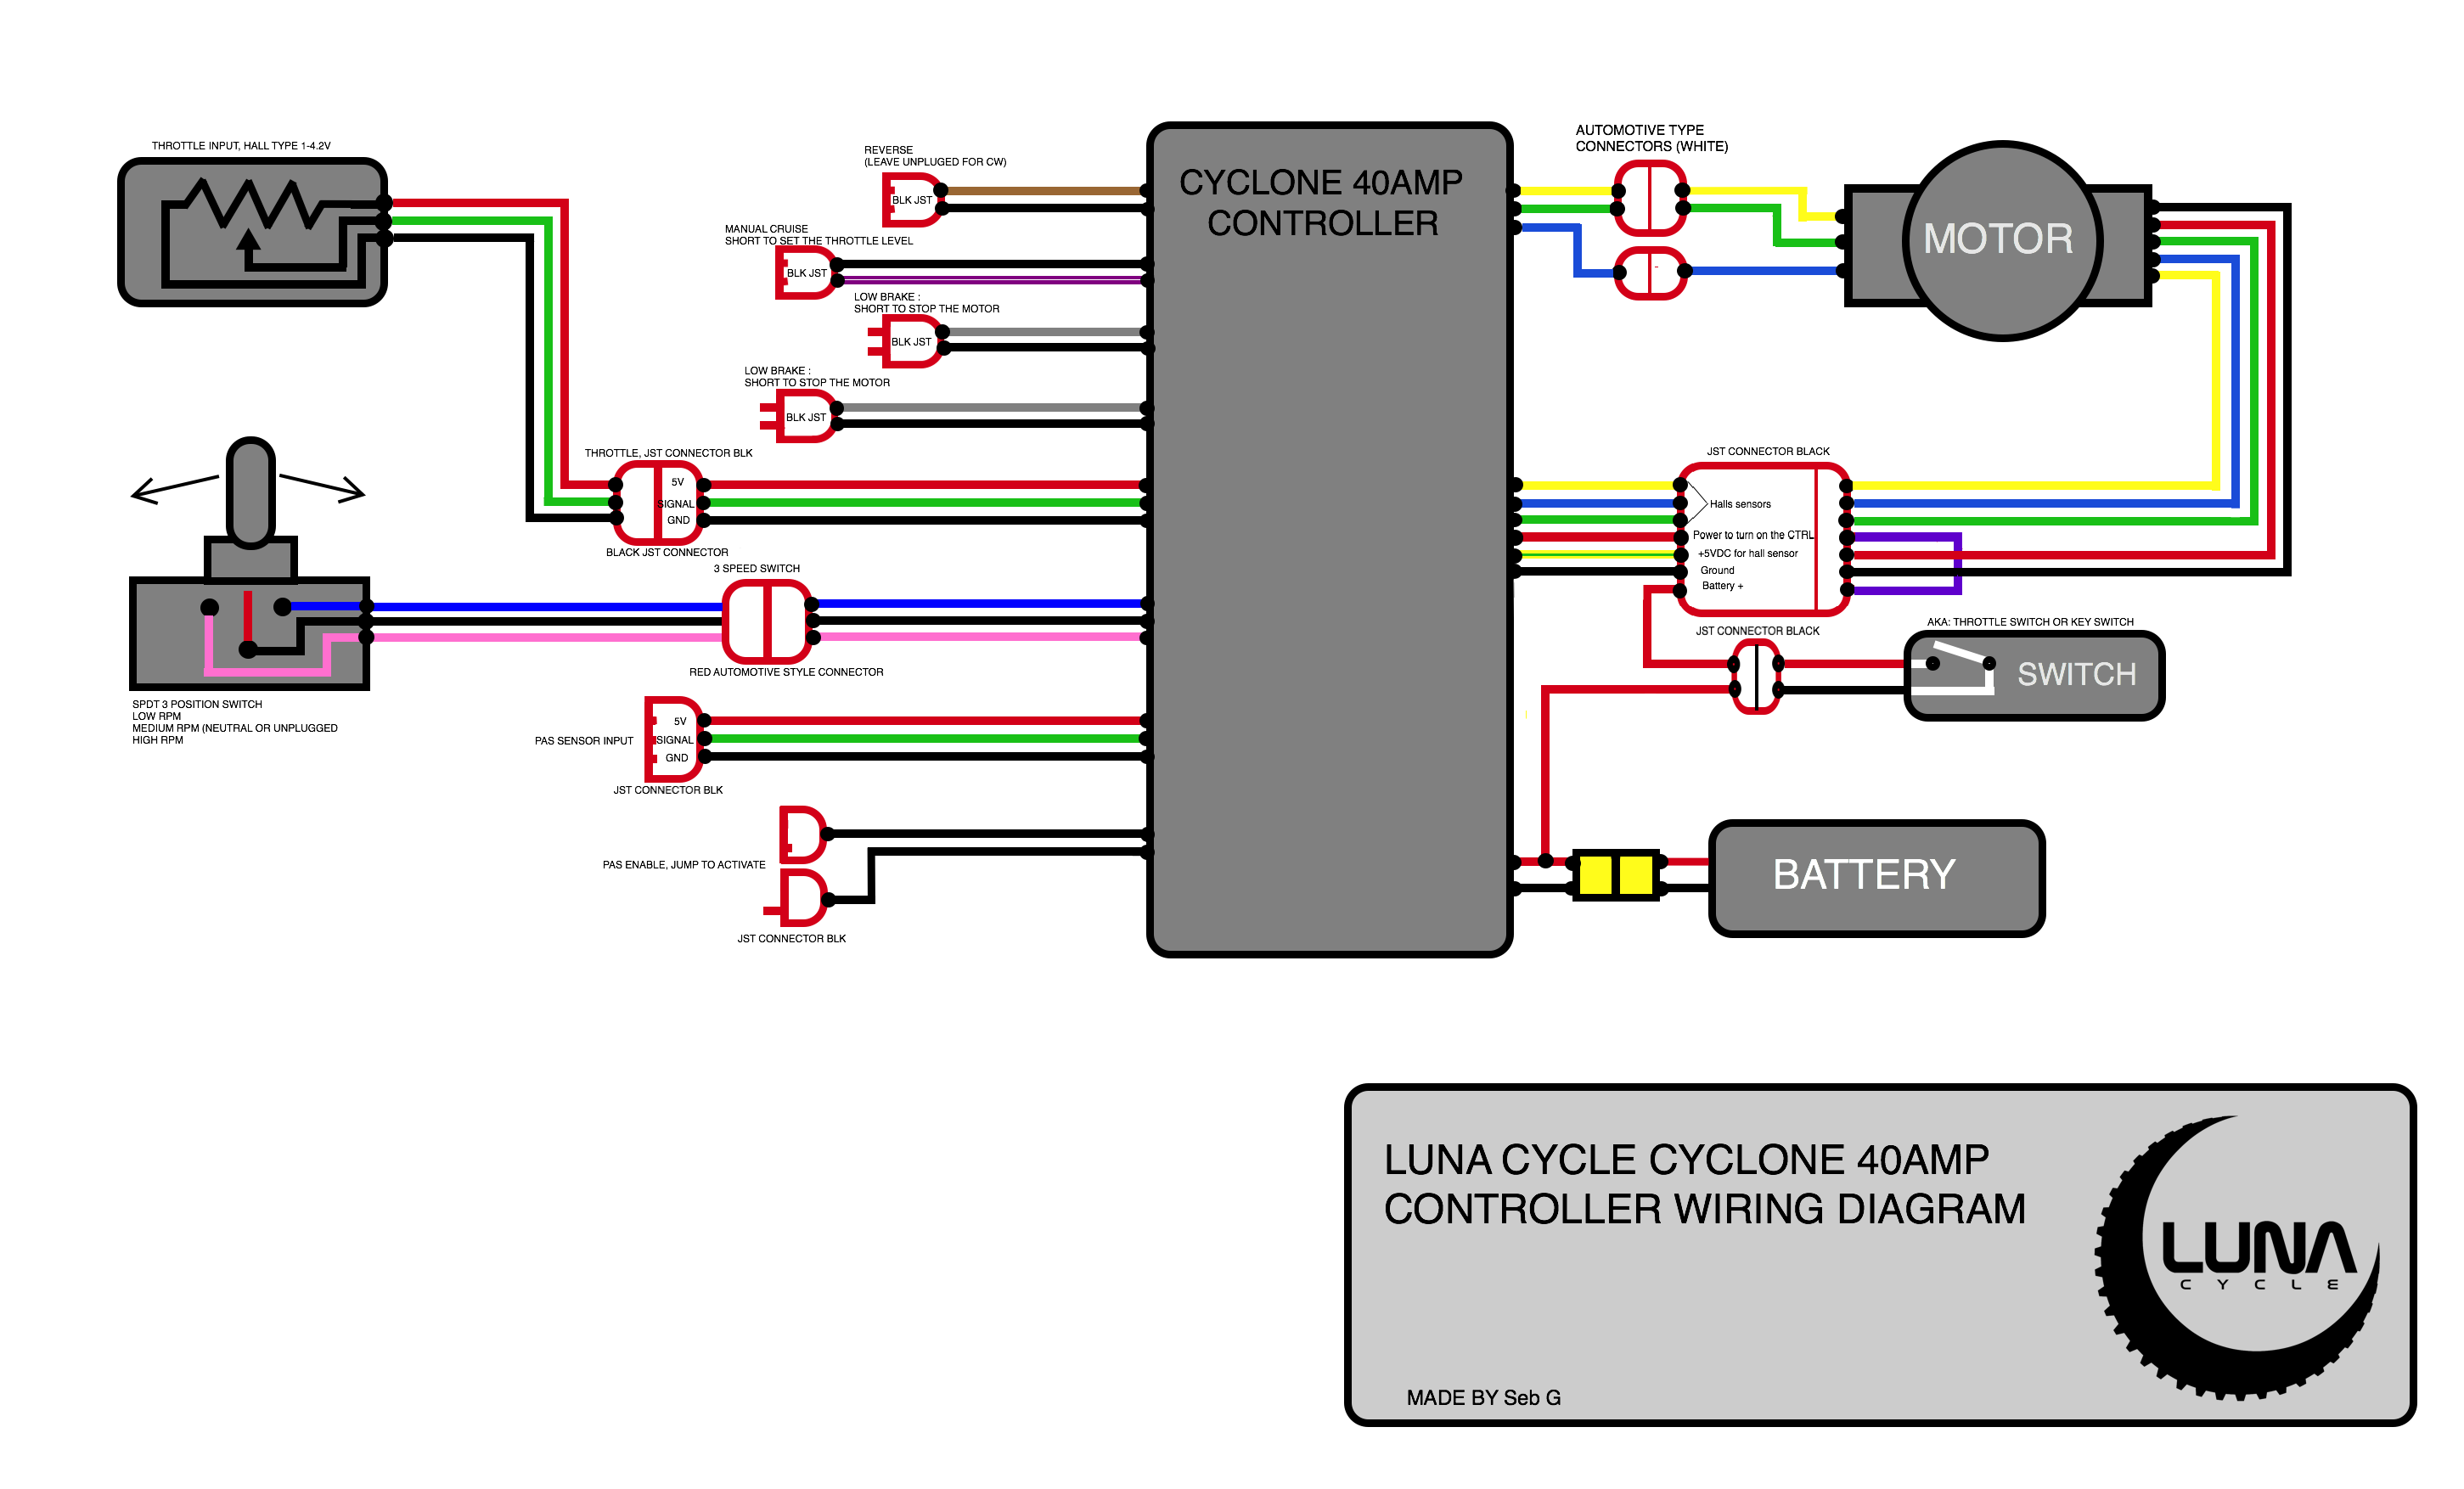 2015 Cyclone Wiring Diagram - 1999 Grand Marquis Fuse Panel Diagram  sonycdx-wirings.au-delice-limousin.fr | 2015 Cyclone Wiring Diagram |  | Bege Wiring Diagram - Bege Wiring Diagram Full Edition